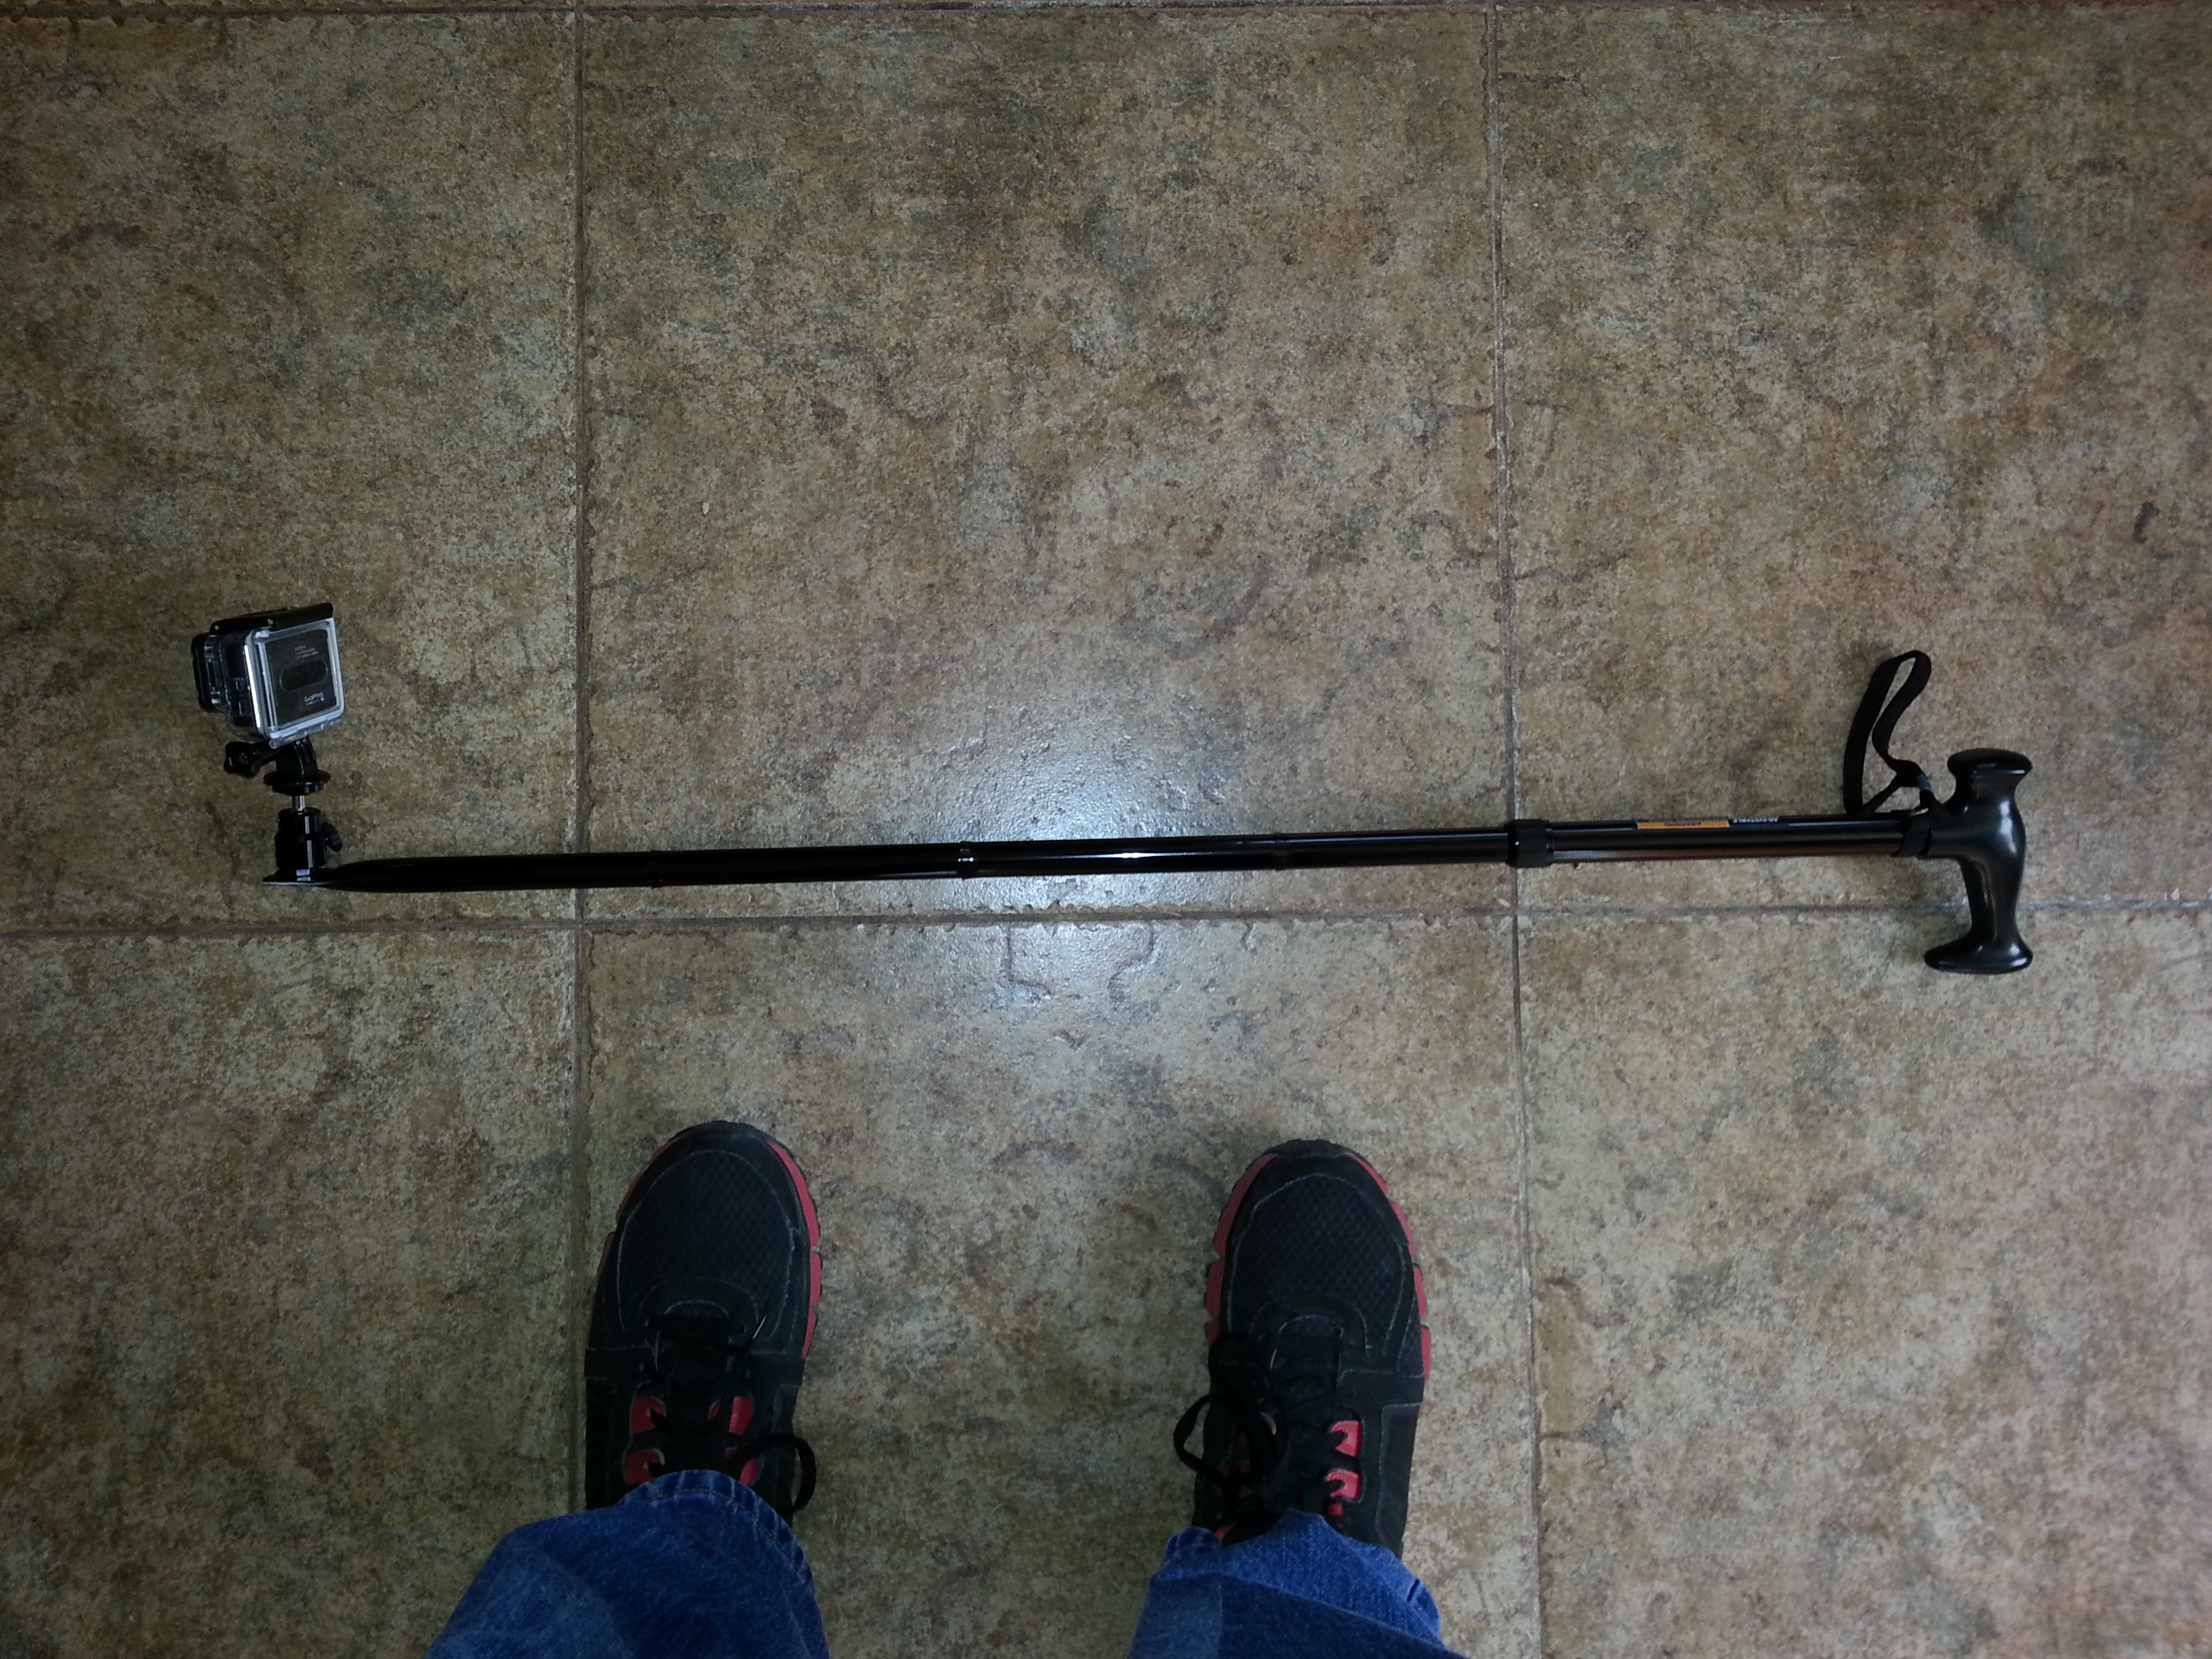 GoPro Extendable Extension Pole for $8.00